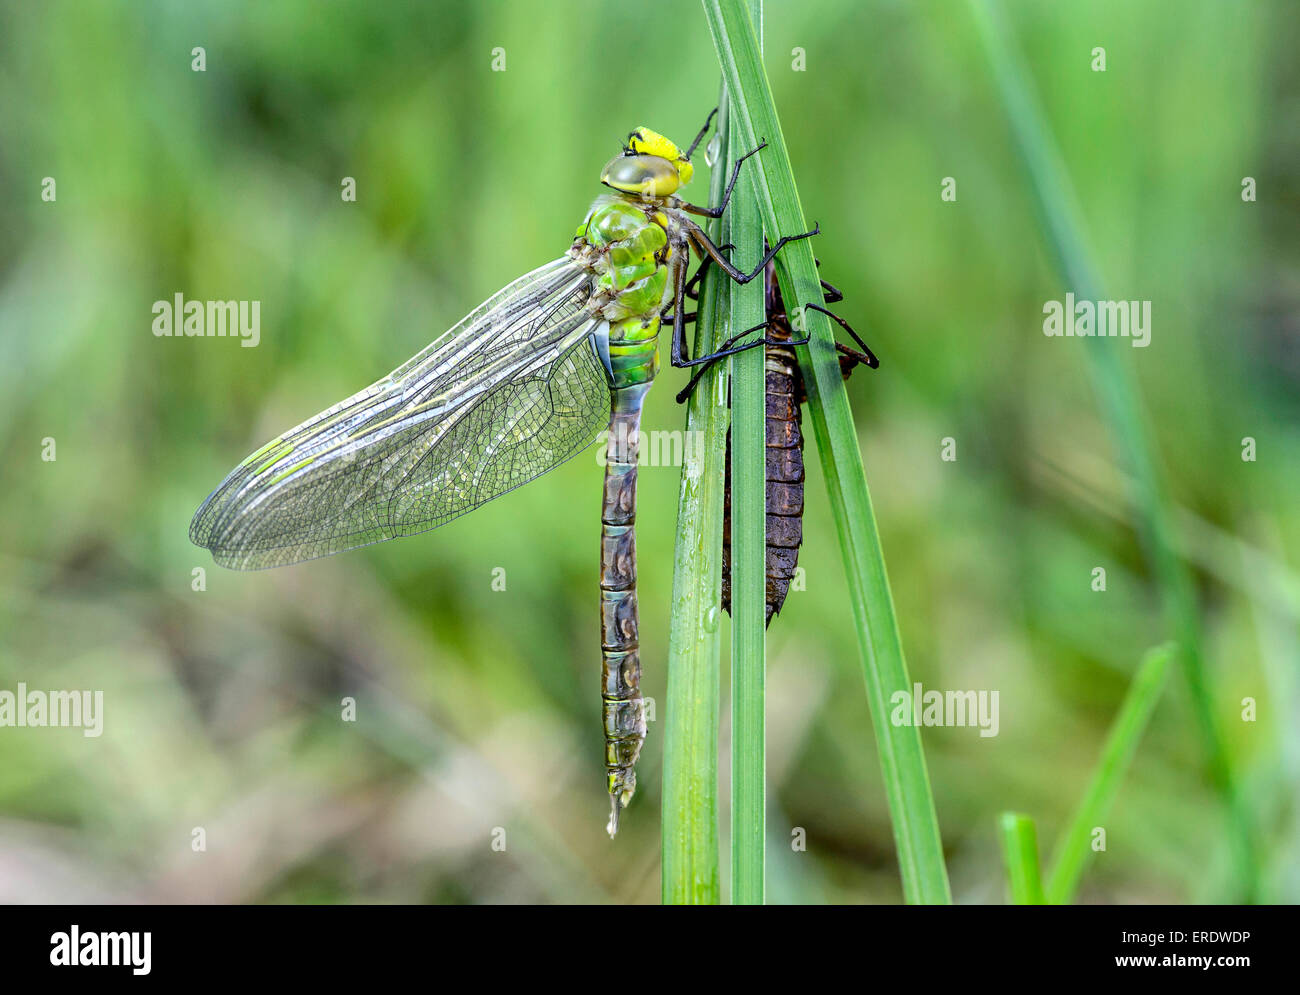 Newly hatched emperor dragonfly or blue emperor (Anax imperator), family Aeshnidae, male, Switzerland - Stock Image